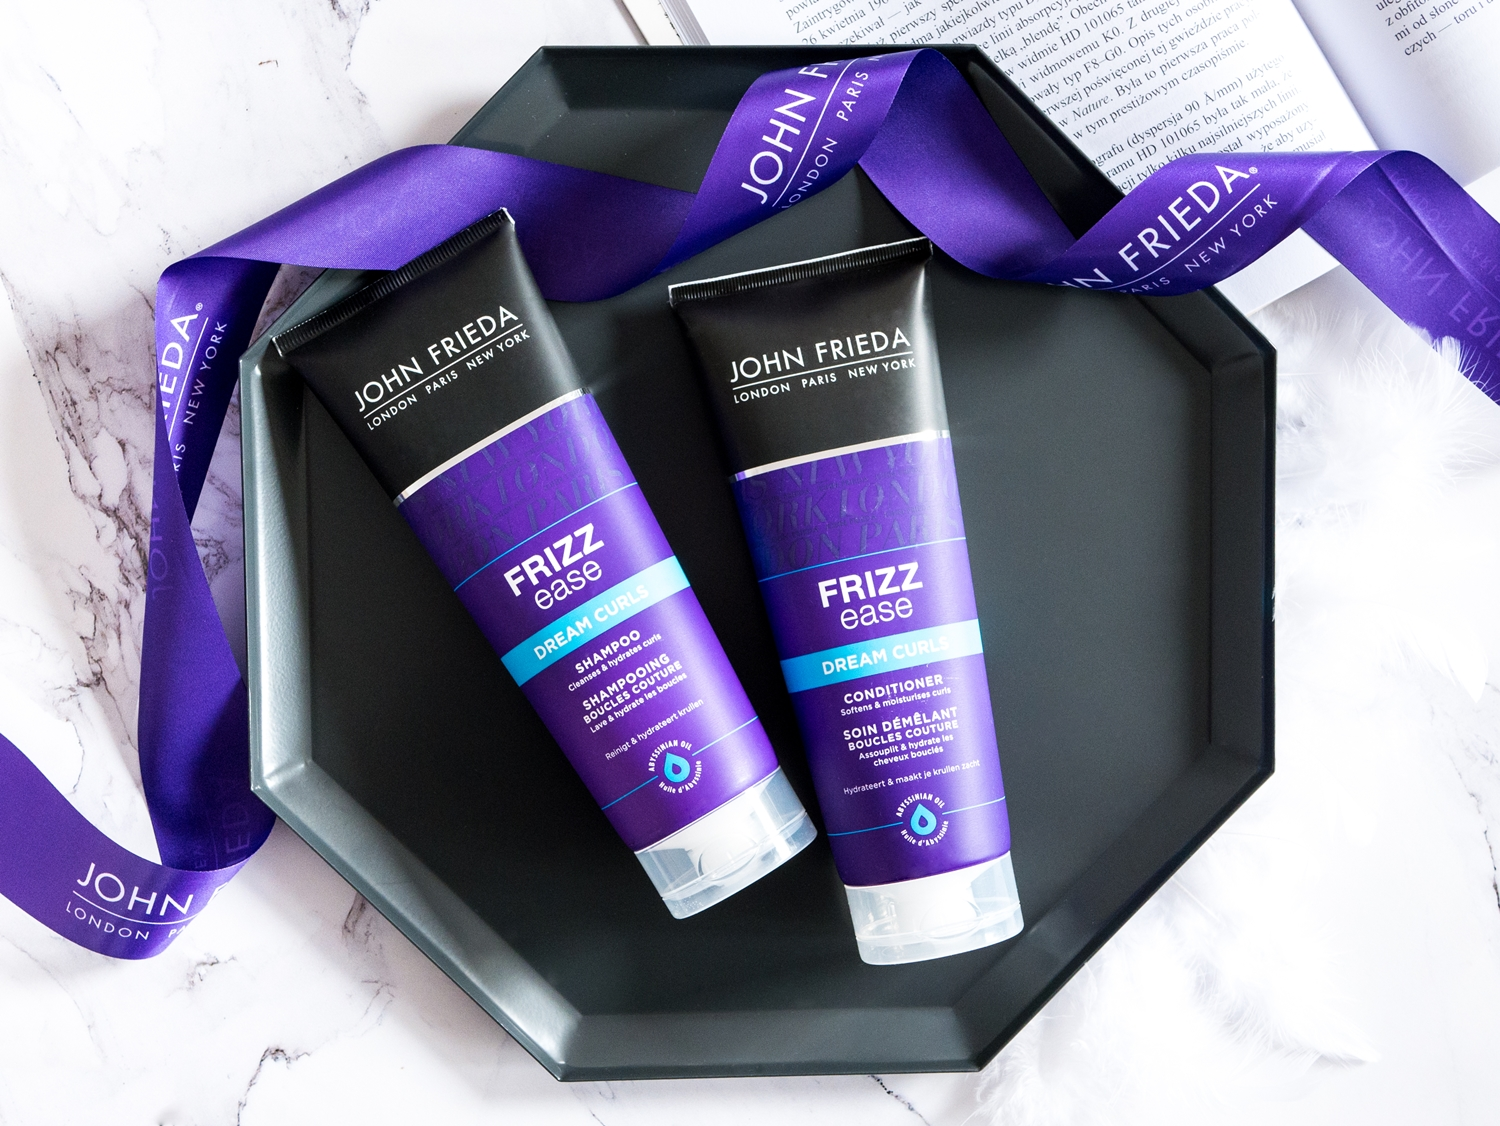 John Frieda Frizz Frizz Ease Dream Curls